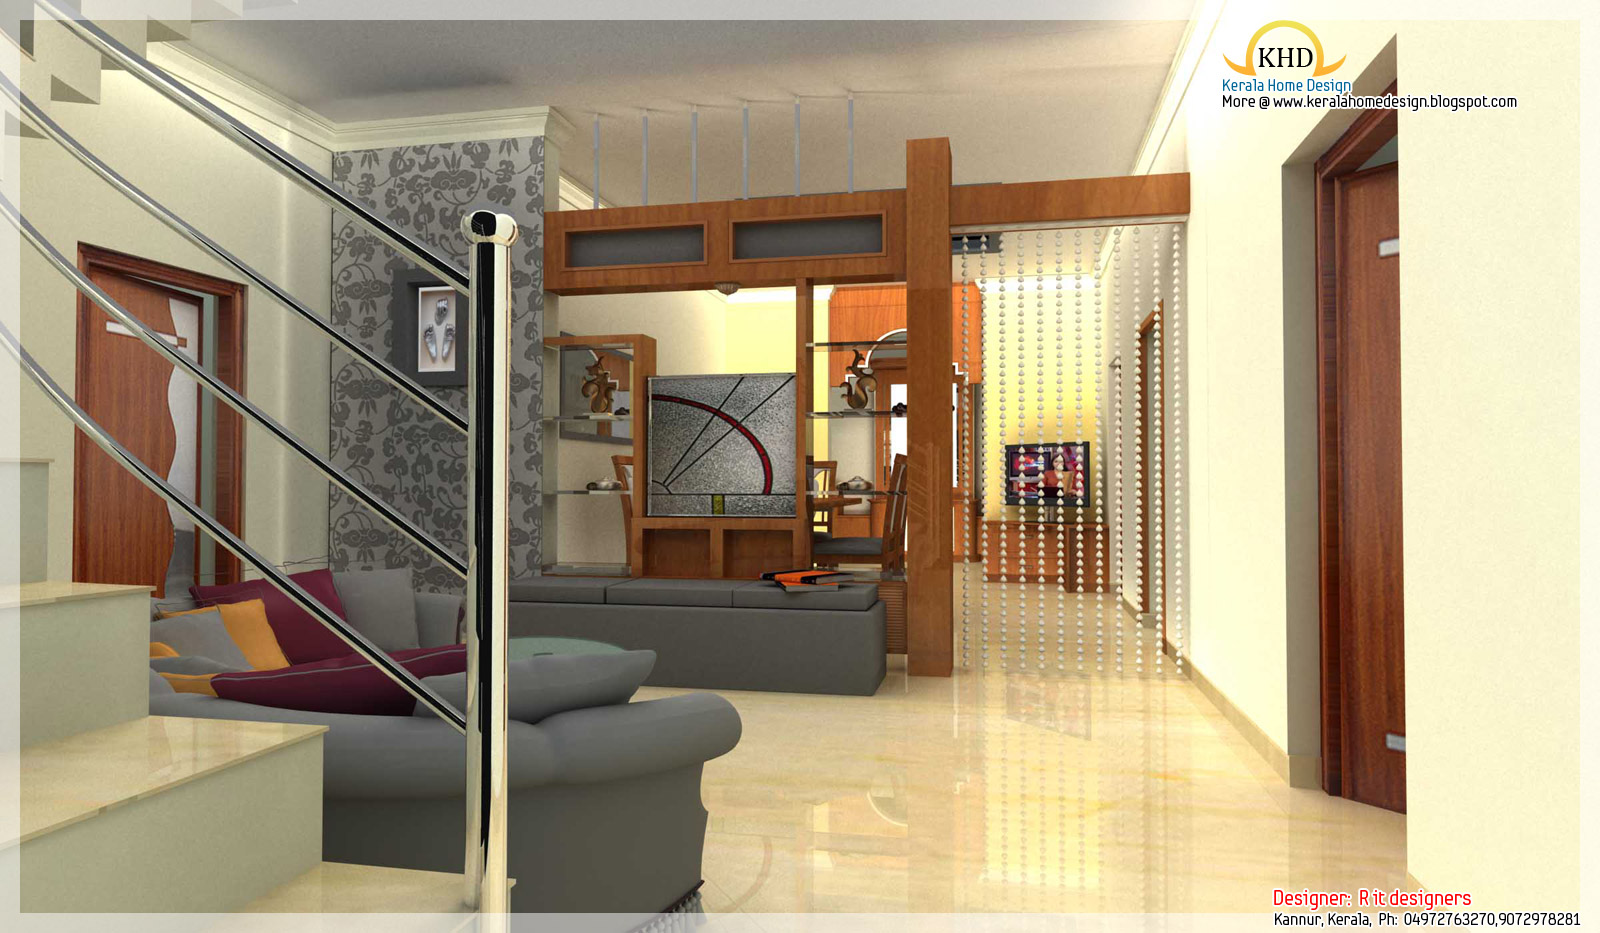 Interior design idea renderings kerala home design and floor plans - Home designs interior ...